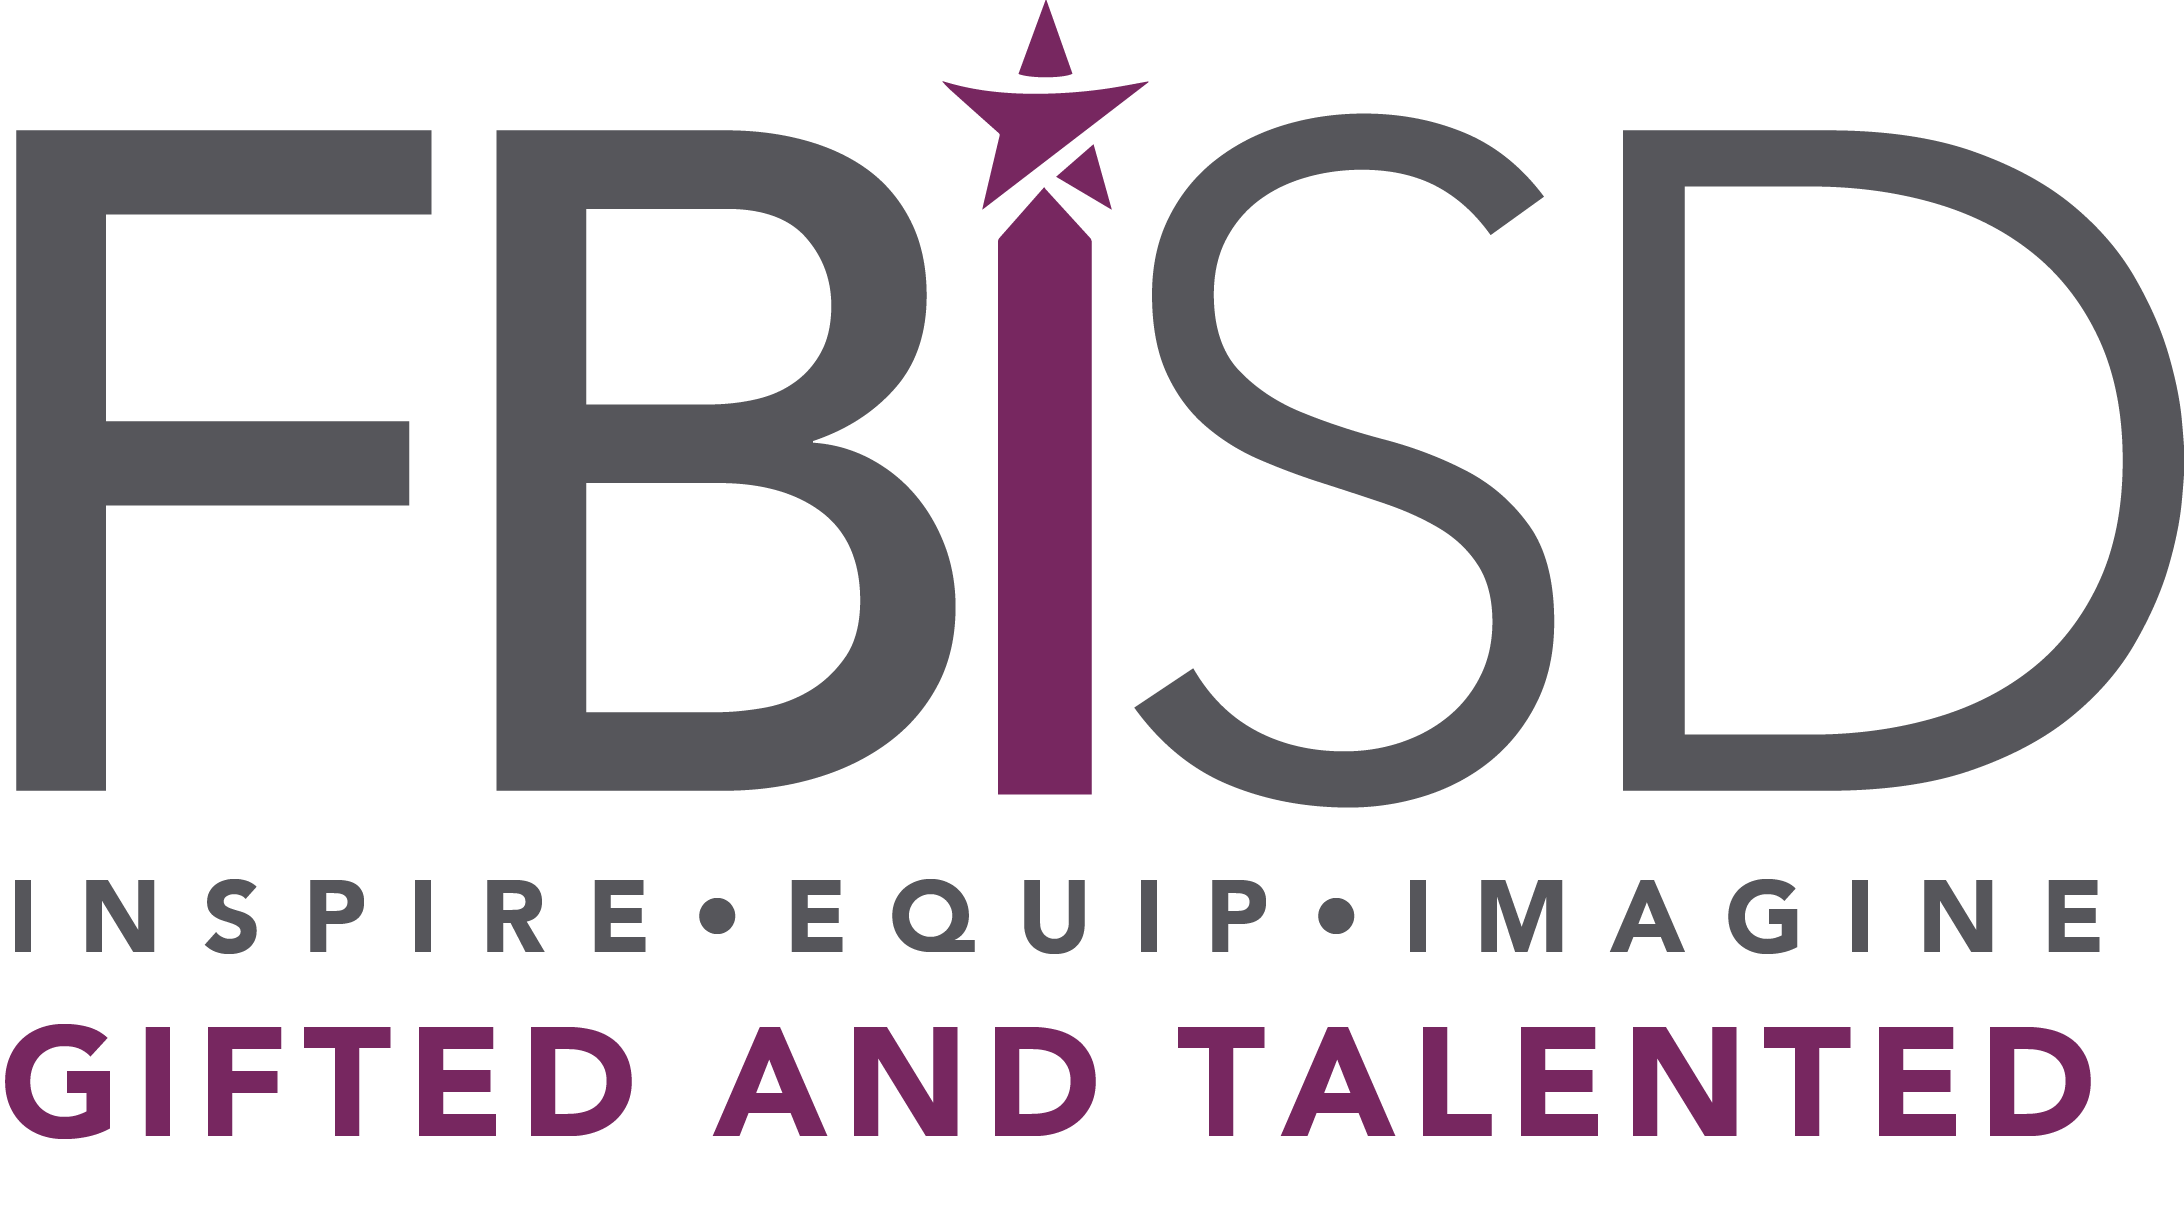 FBISD logo with Gifted and talented along the bottom